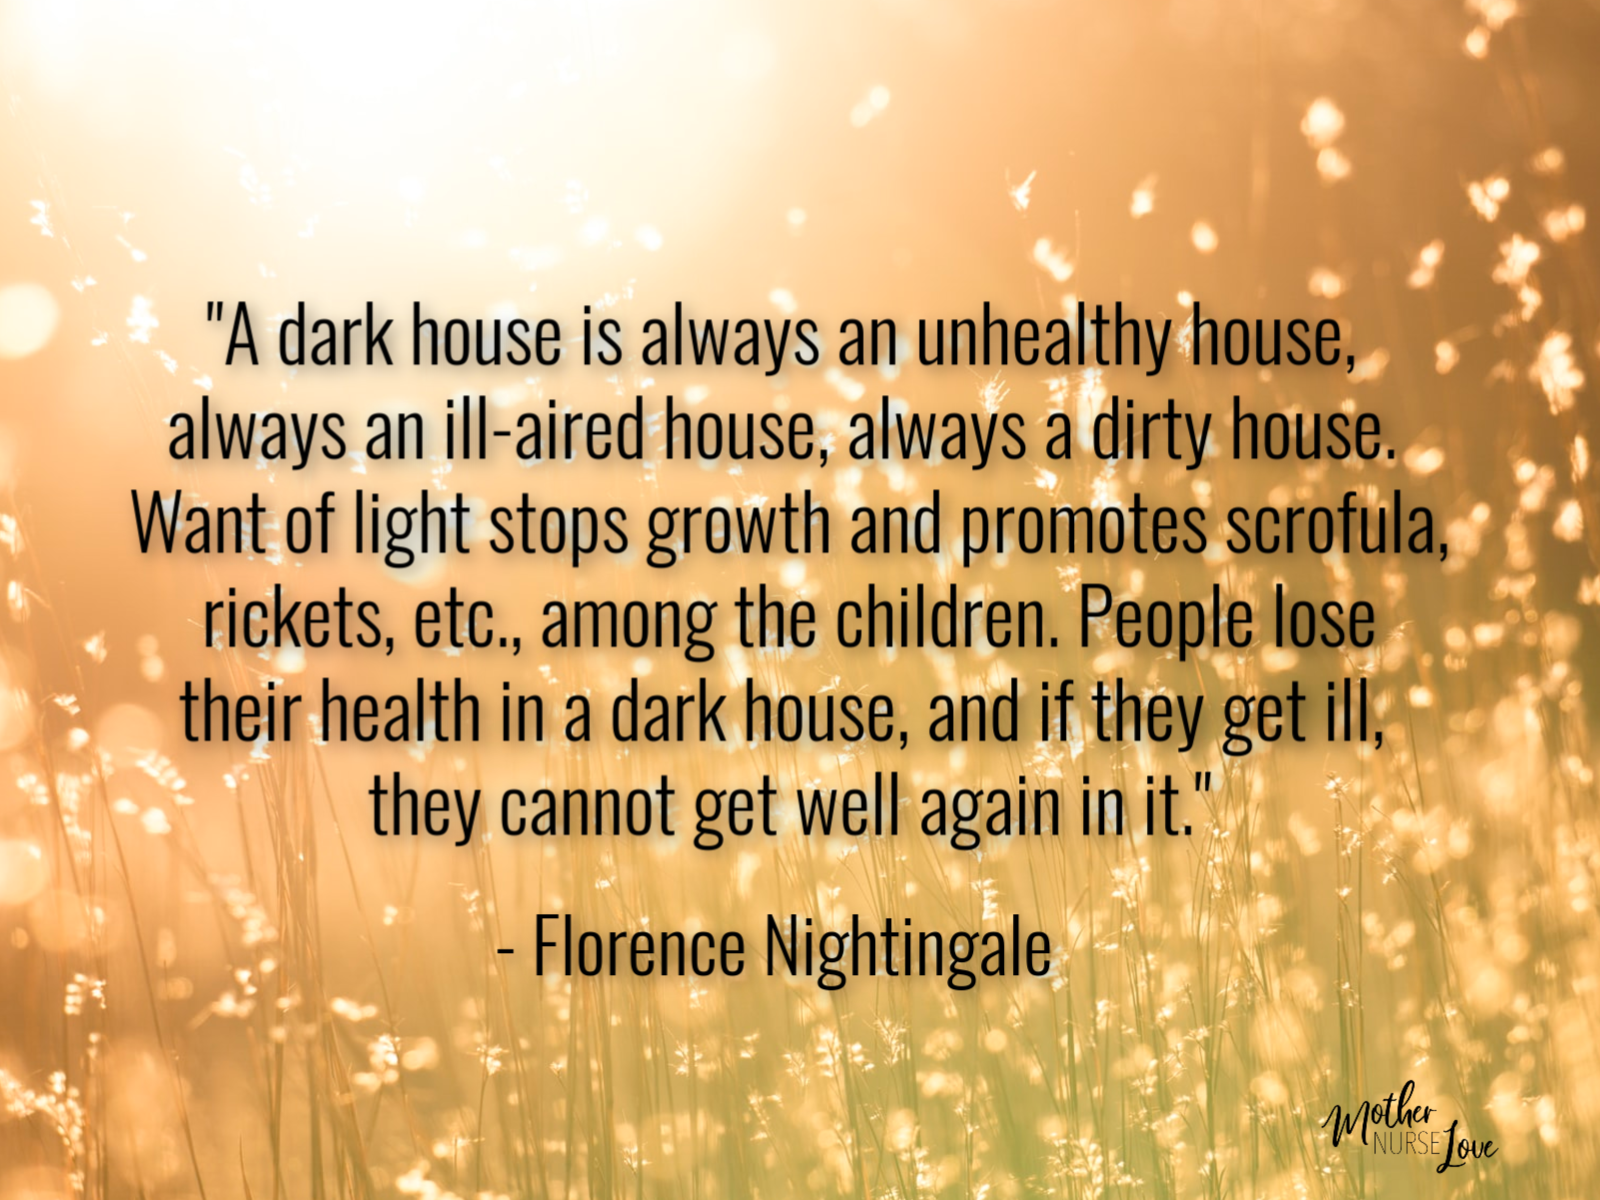 Famous nursing quotes- Florence Nightingale